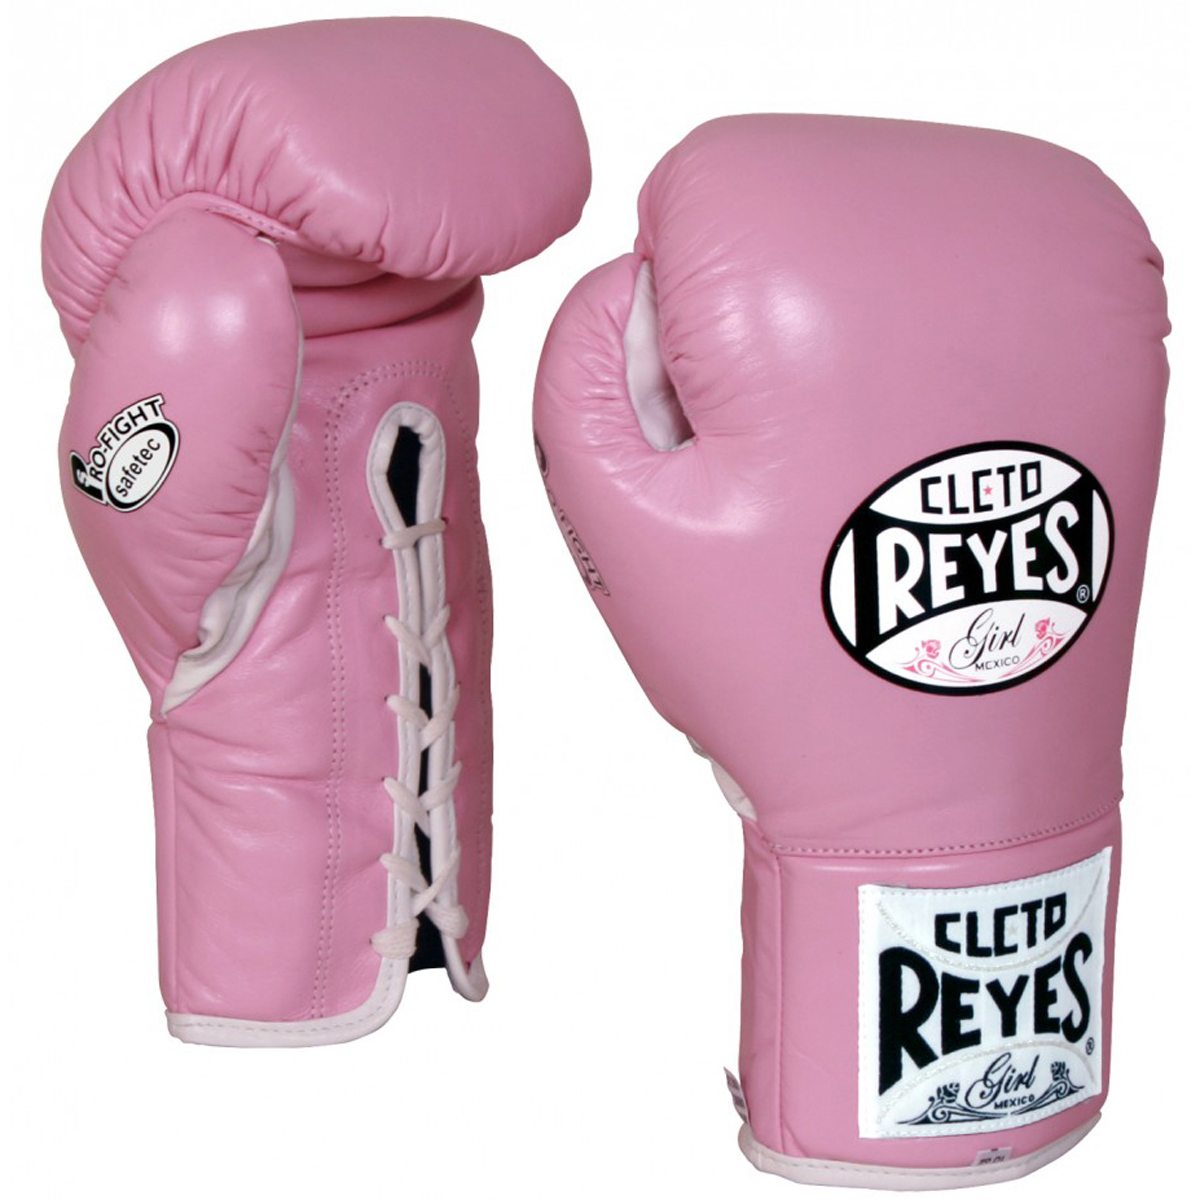 Fighter girls Boxing Gloves Pink Lace Up